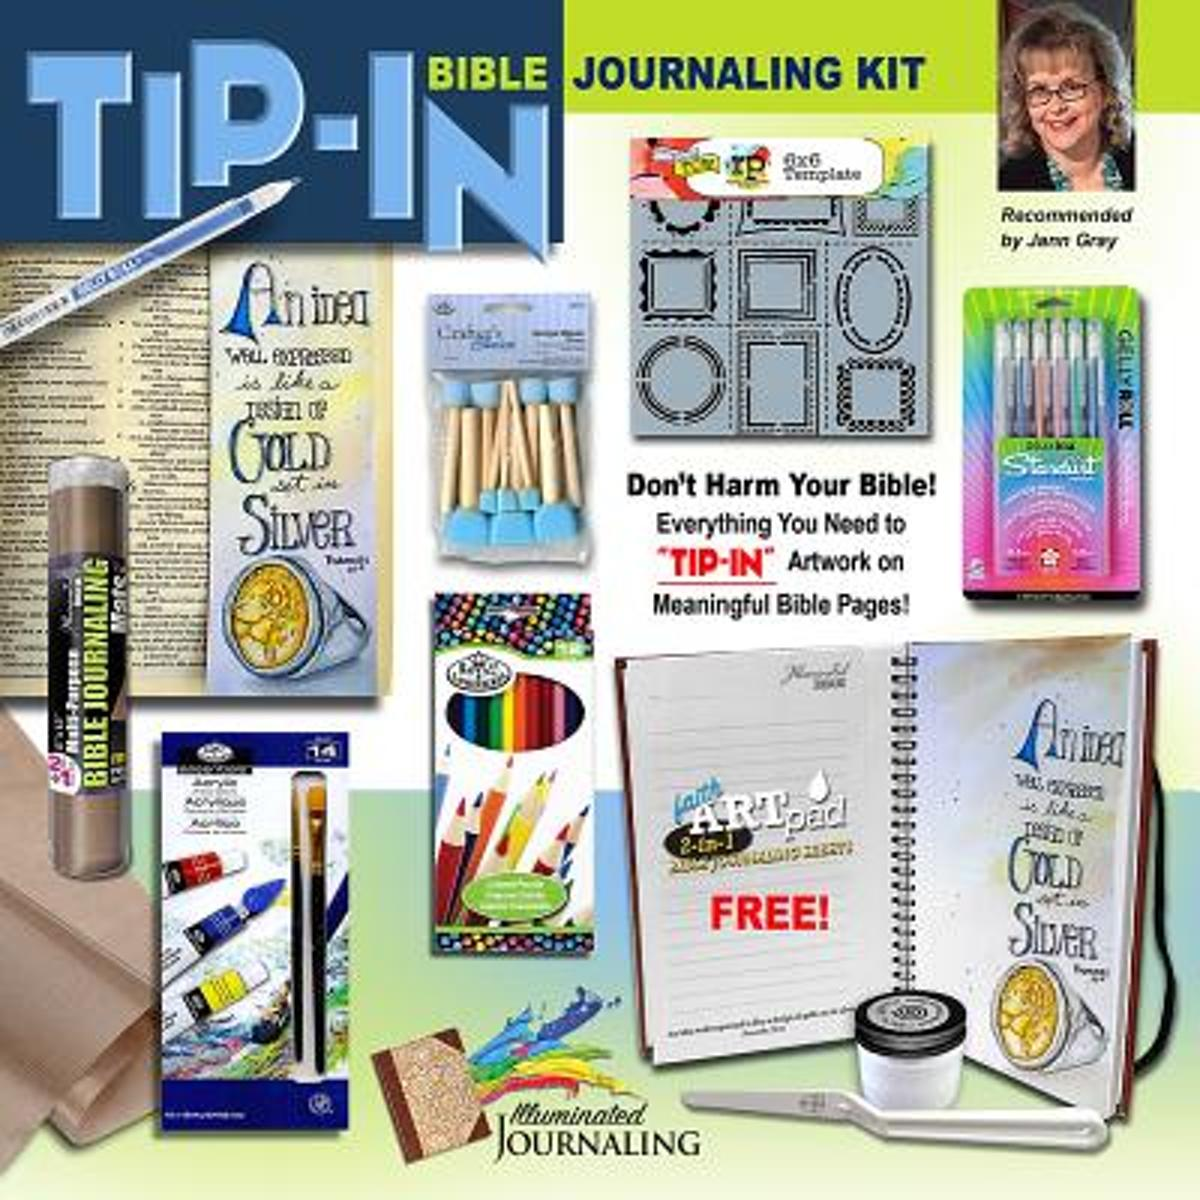 Tip-In Bible Journaling Kit